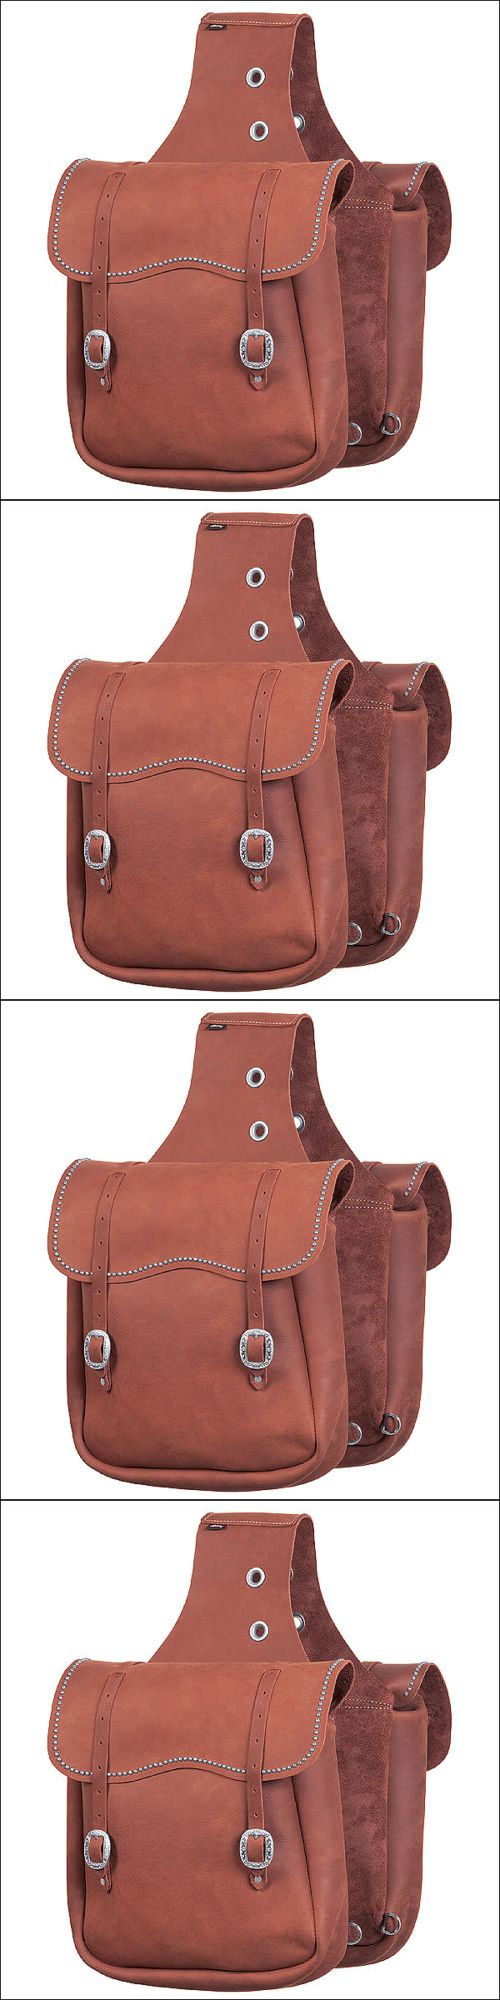 Saddle Bags 167243: Brown Weaver Chap Leather Horse Saddle Bag With Spots Tack Western -> BUY IT NOW ONLY: $147.95 on eBay!